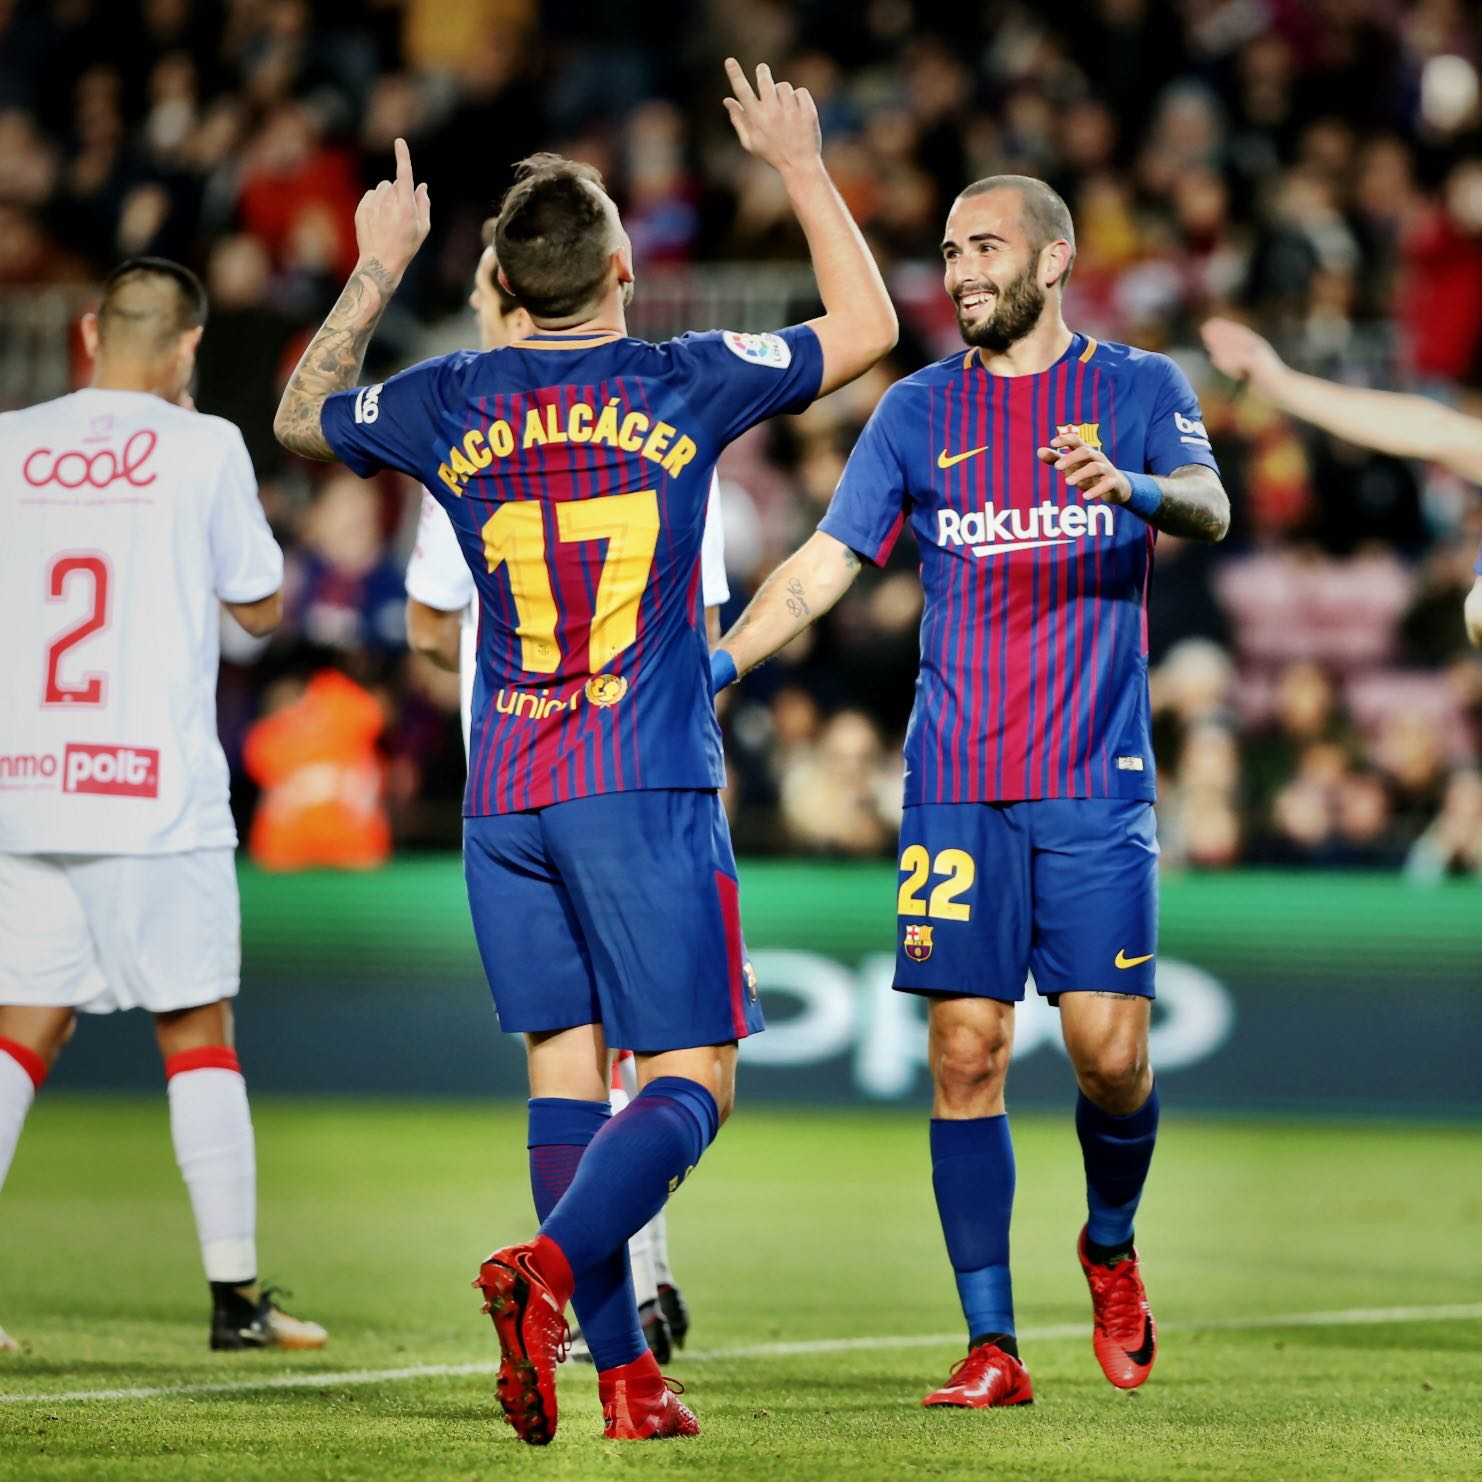 Barcelona 5-0 Real Murcia Highlights